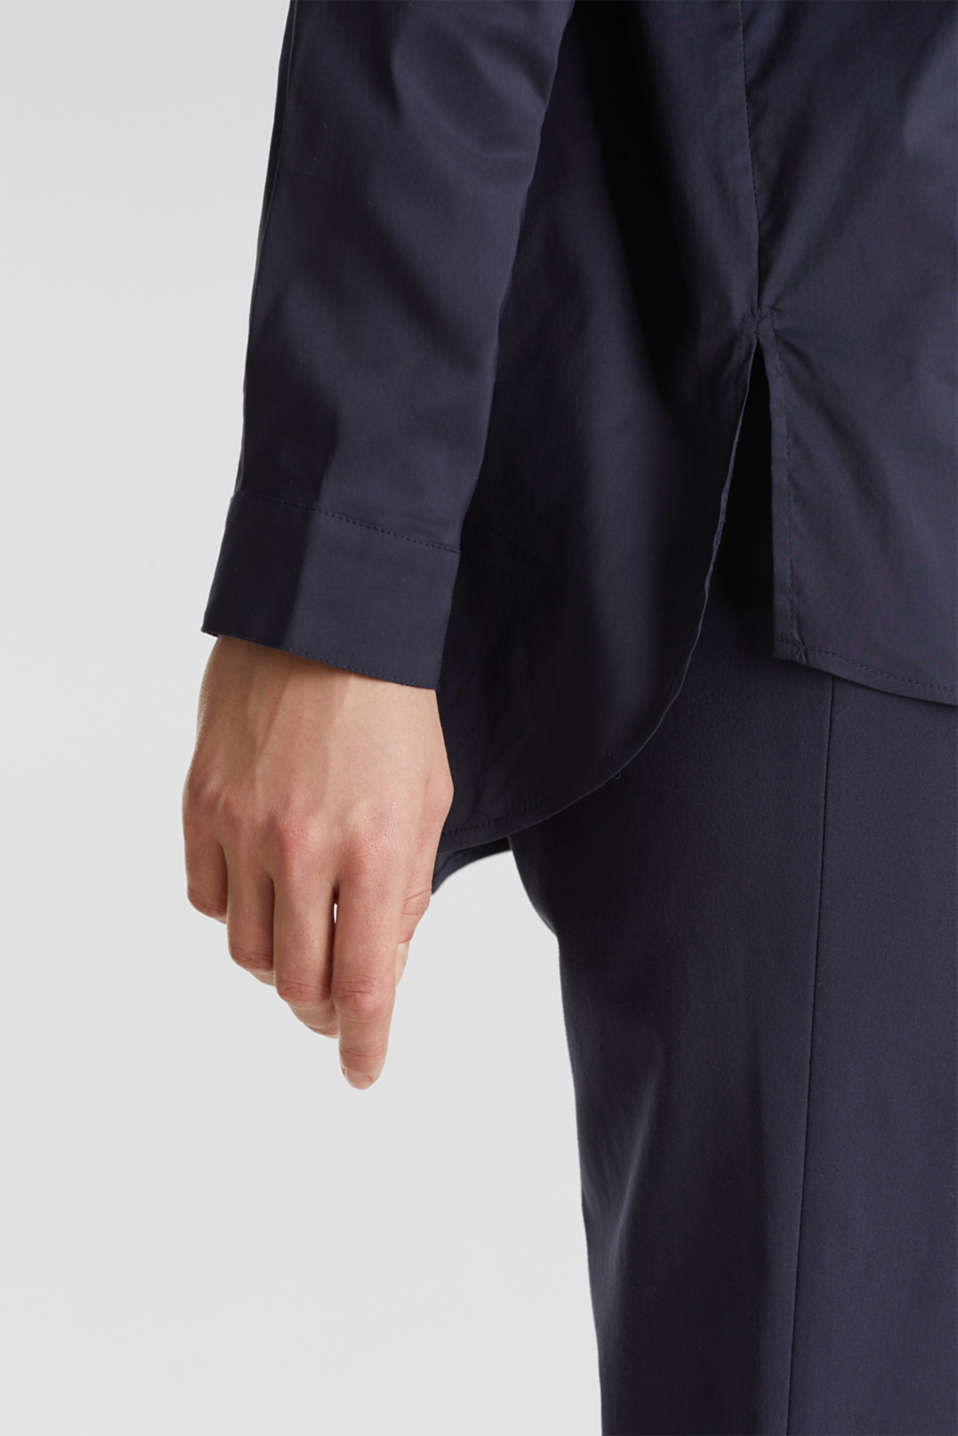 Slip-on stretch blouse with a high-low hem, NAVY, detail image number 5